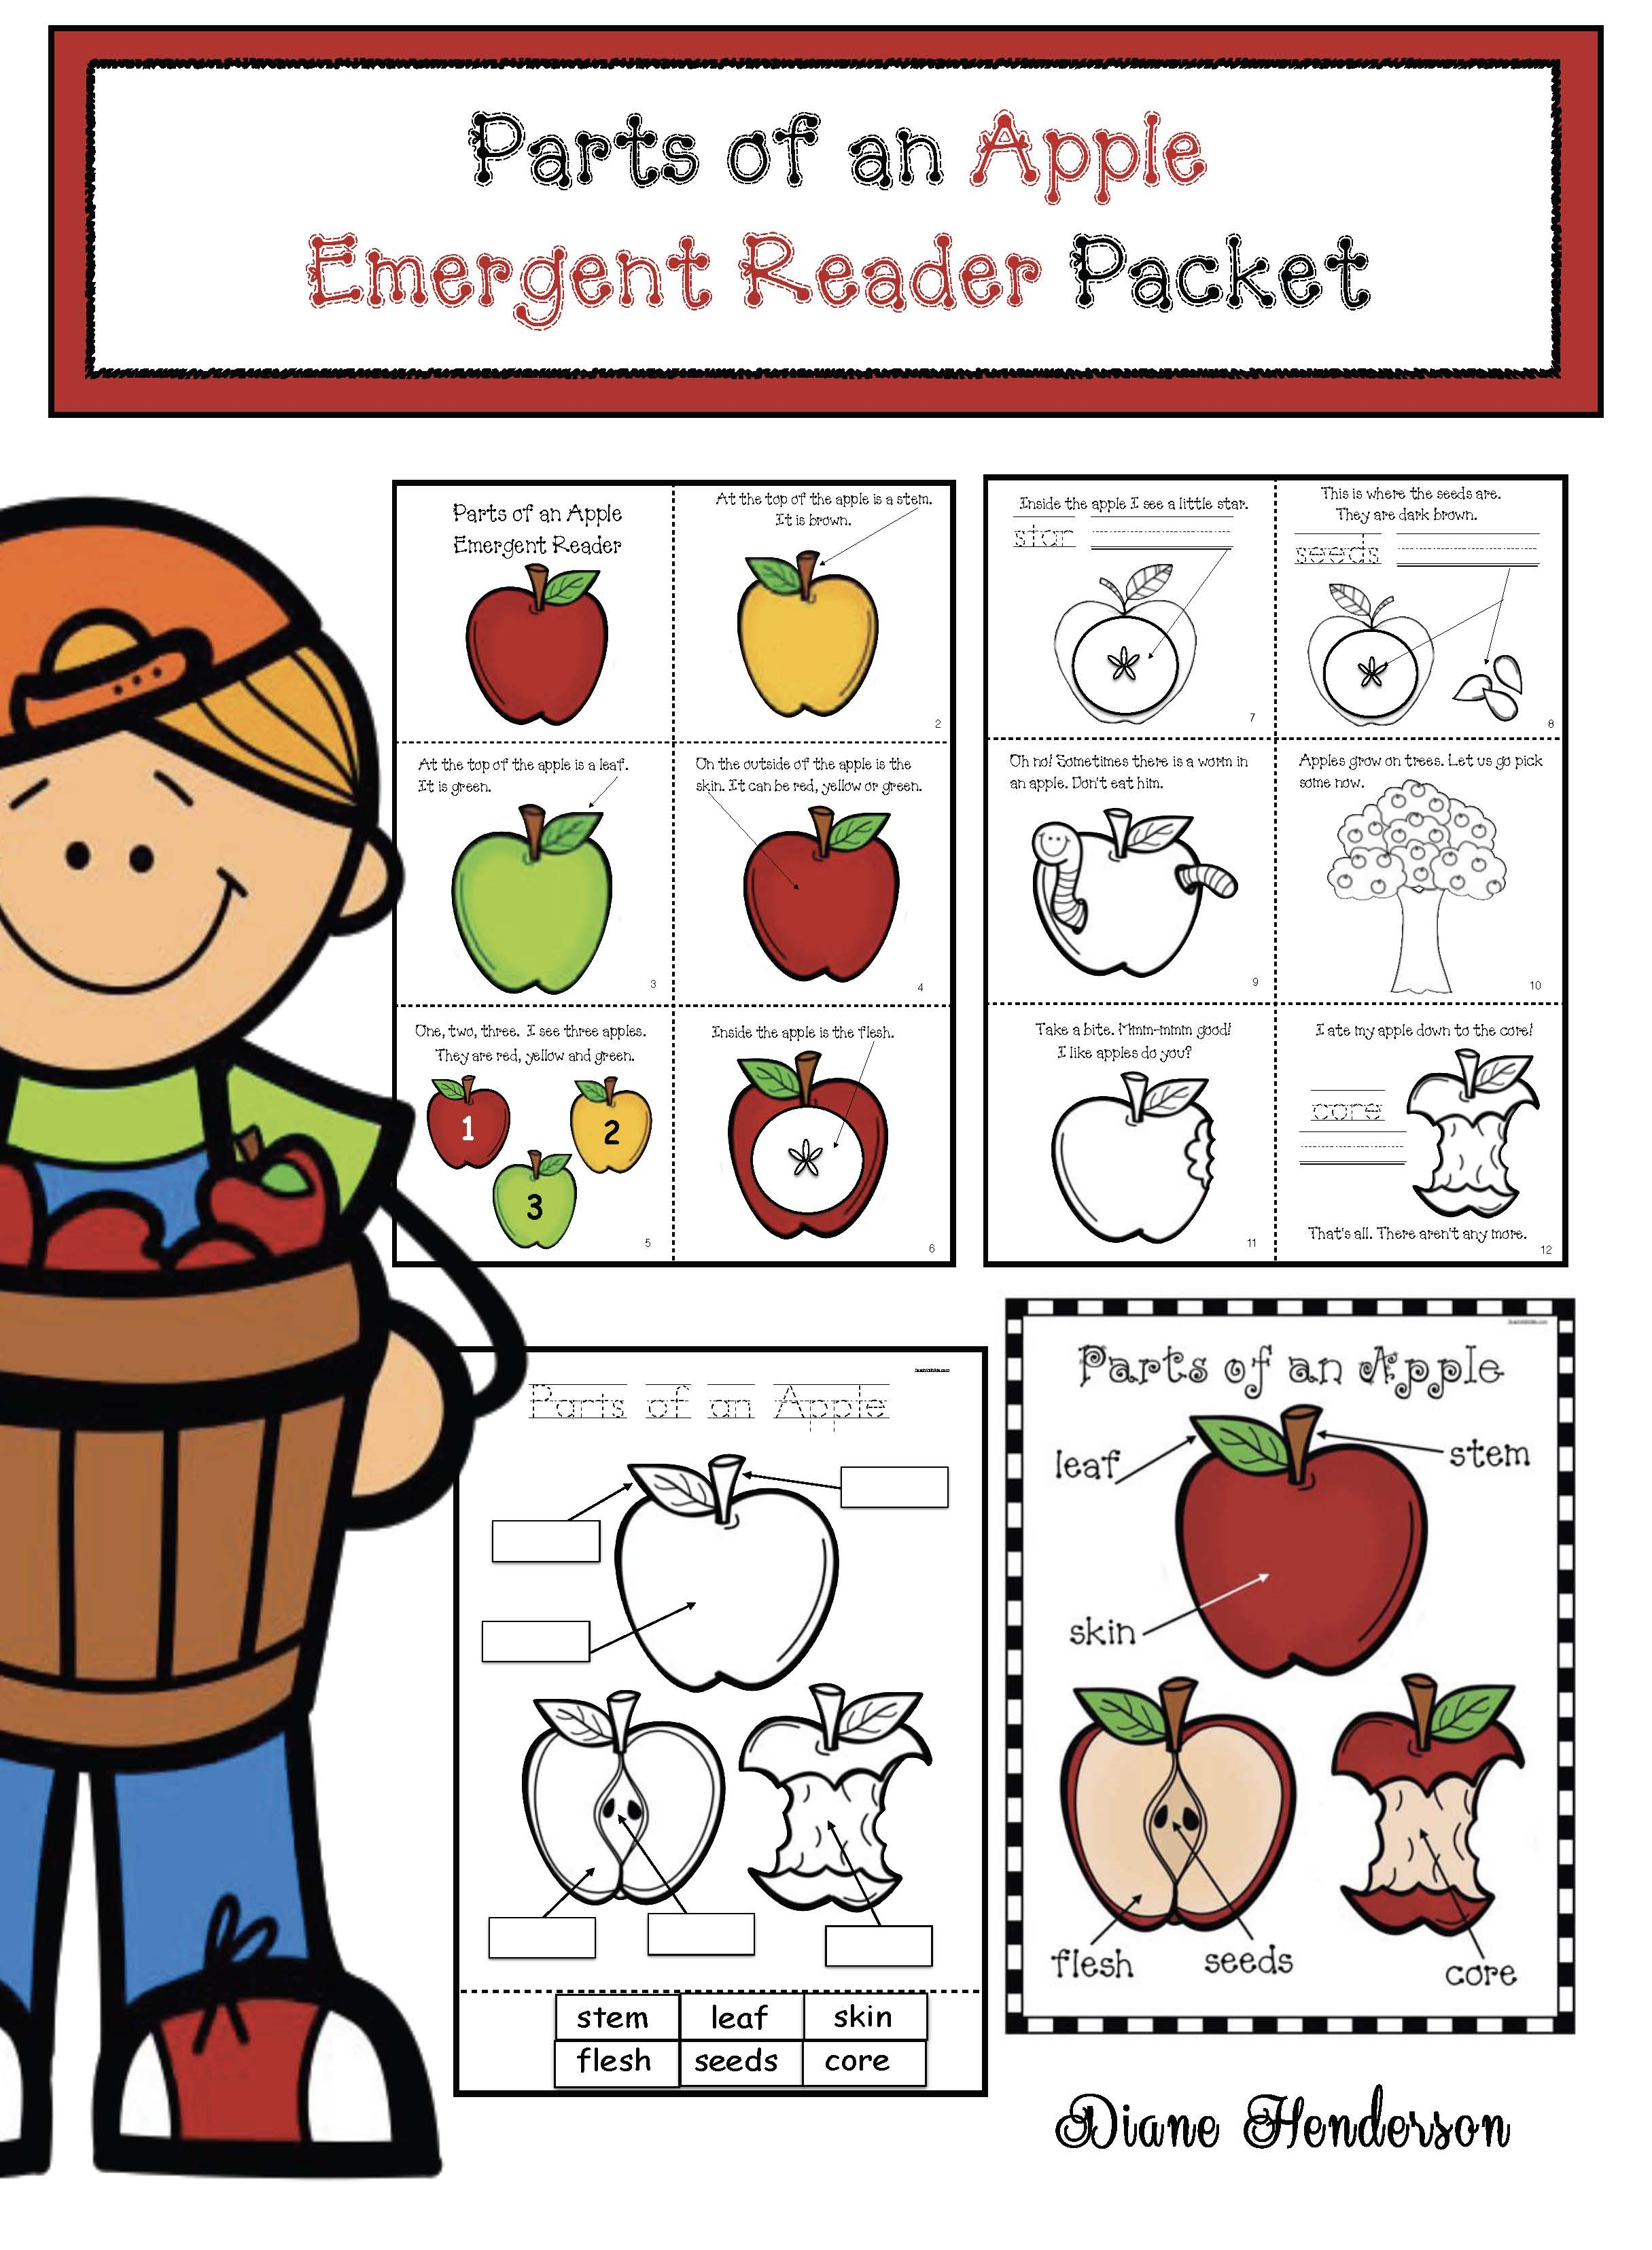 cov parts of an apple emergent reader apple crafts, apple centers, apple bulletin boards, melted crayon activities, label an apple activities, 3parts of an apple emergent reader, emergent readersD apple craft, apple centerpieces